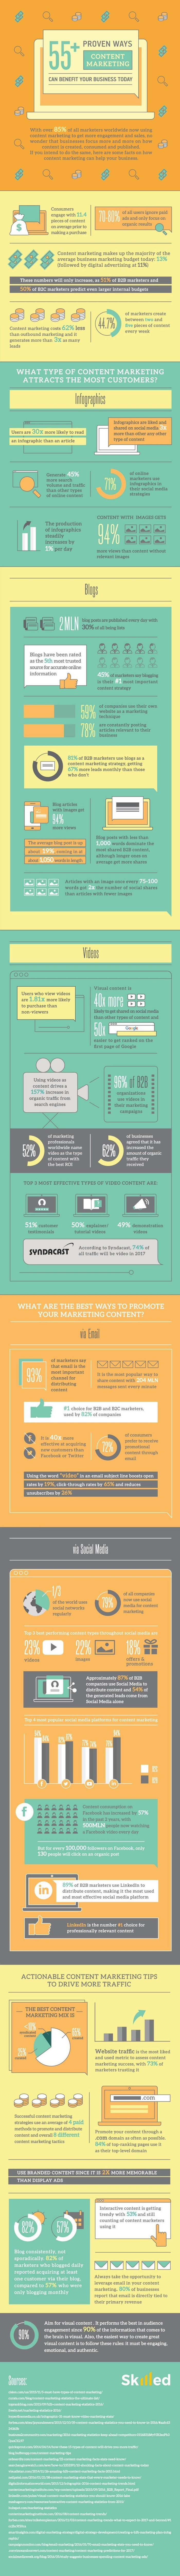 55+ Proven Ways Content Marketing Can Help Your Business (infographic)  http://bloggerkhan.com